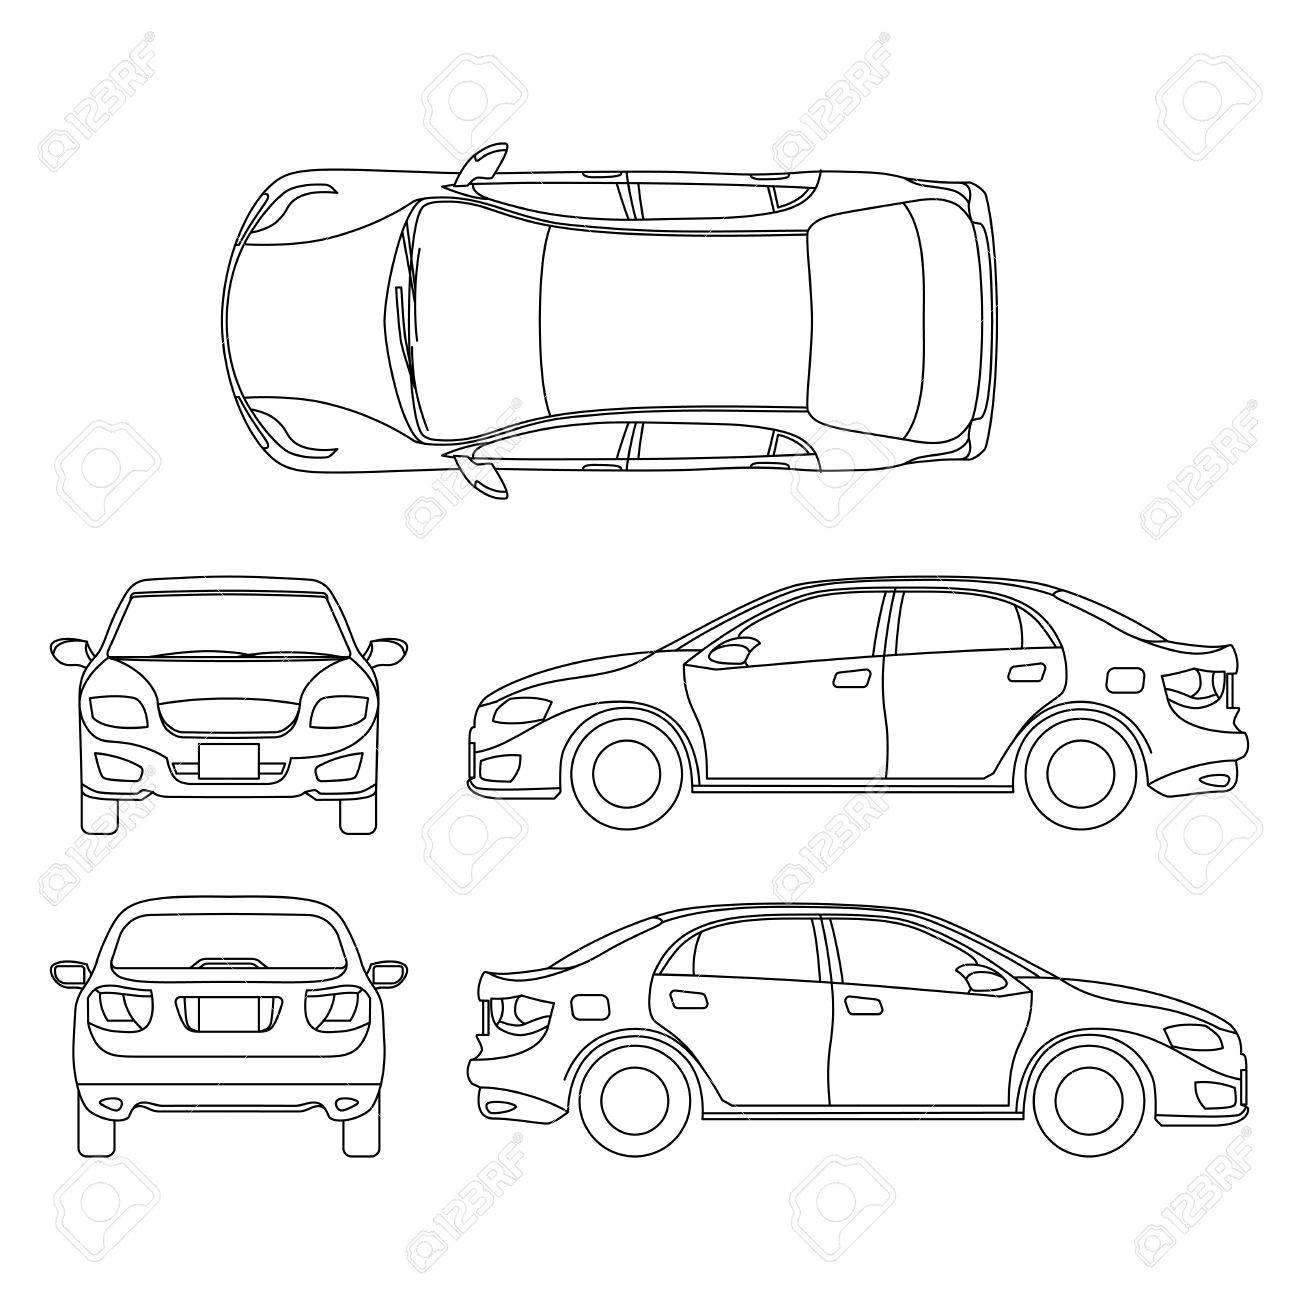 Outline Sedan Car Vector Drawing In Different Point Of View ...